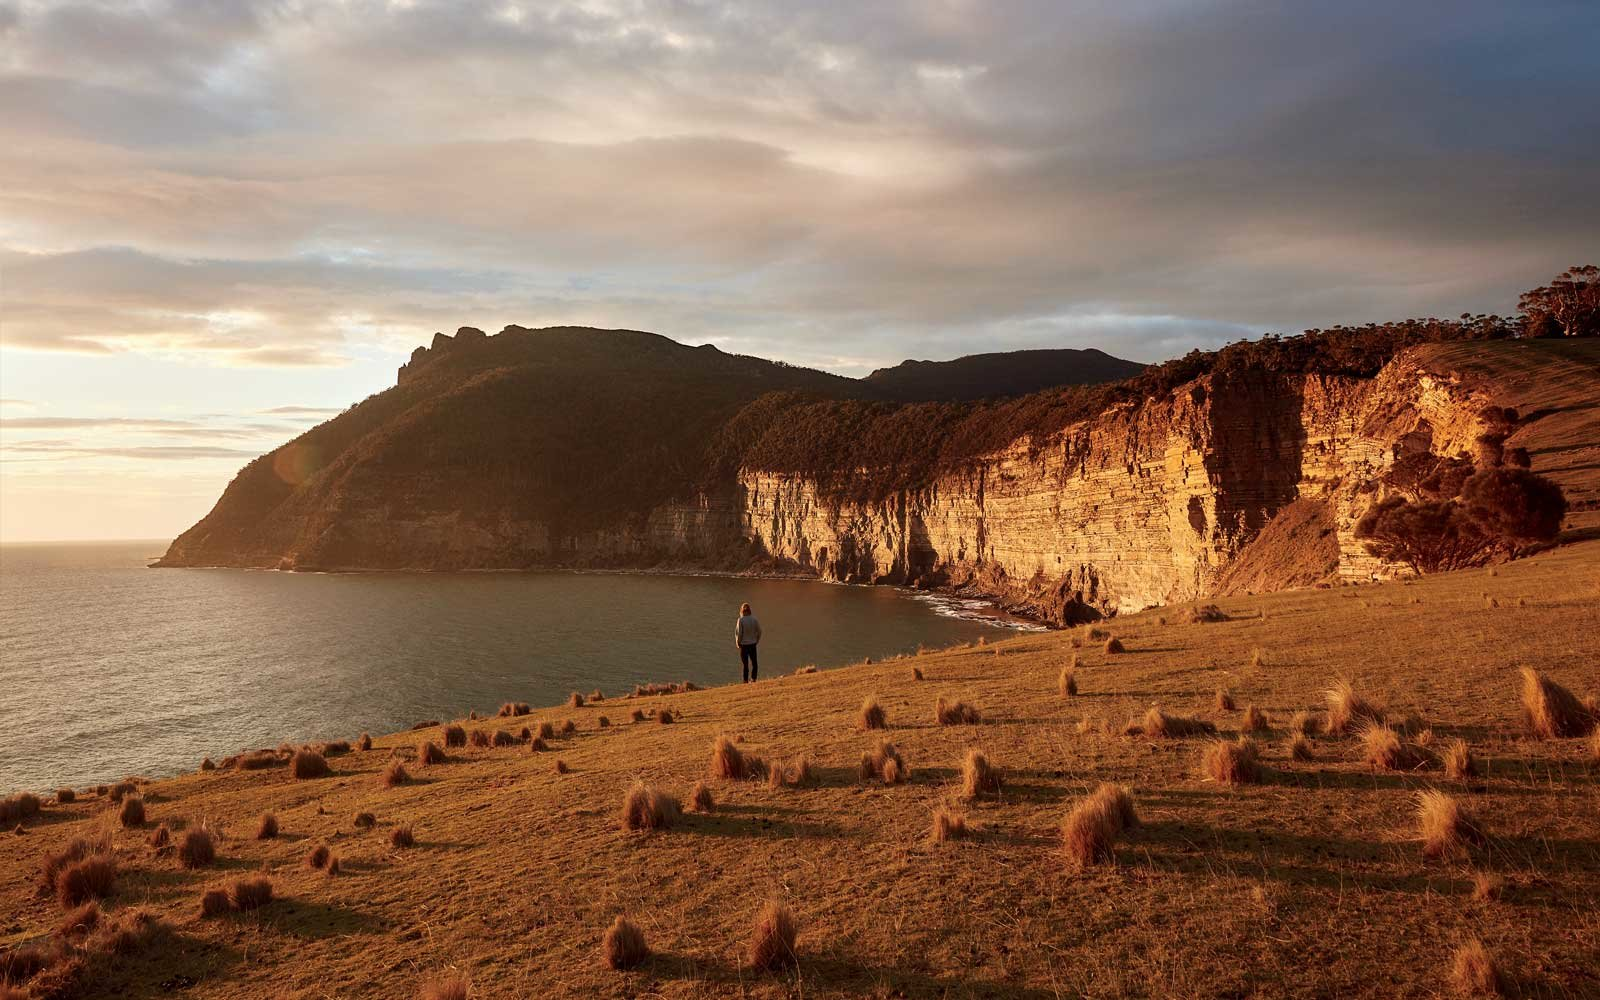 Tasmania Is the World's Next Great Under-the-Radar, Unspoiled Travel Destination